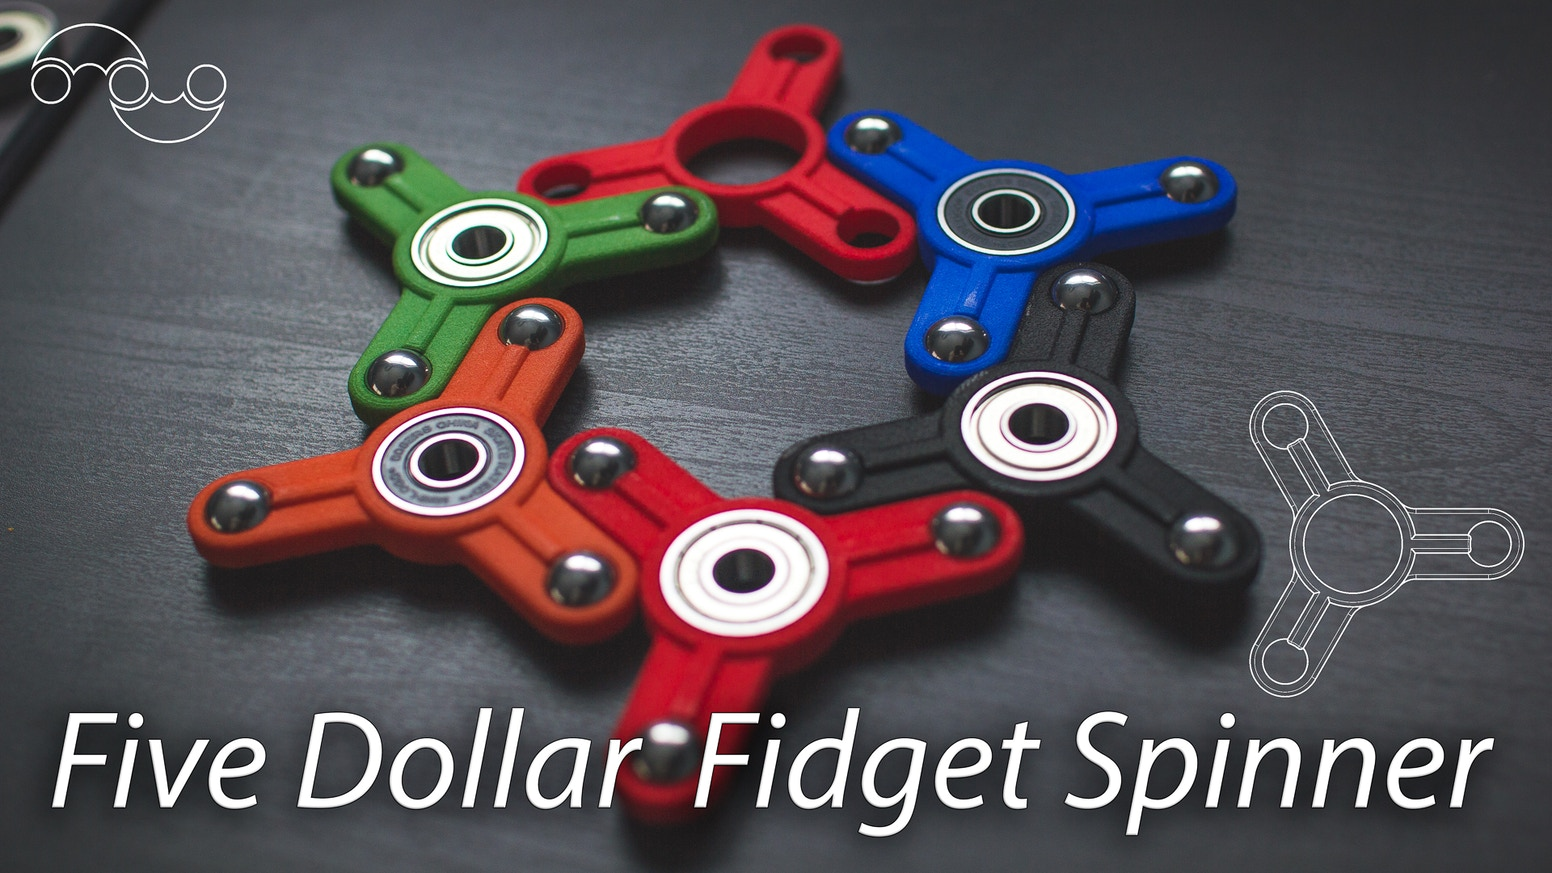 We have created the most inexpensive fidget spinner! Only $5(USD) to get it in the hands of everyone in need. Click the button below to sign up to our mailing list and be notified when Pre-orders are available(and new designs!).